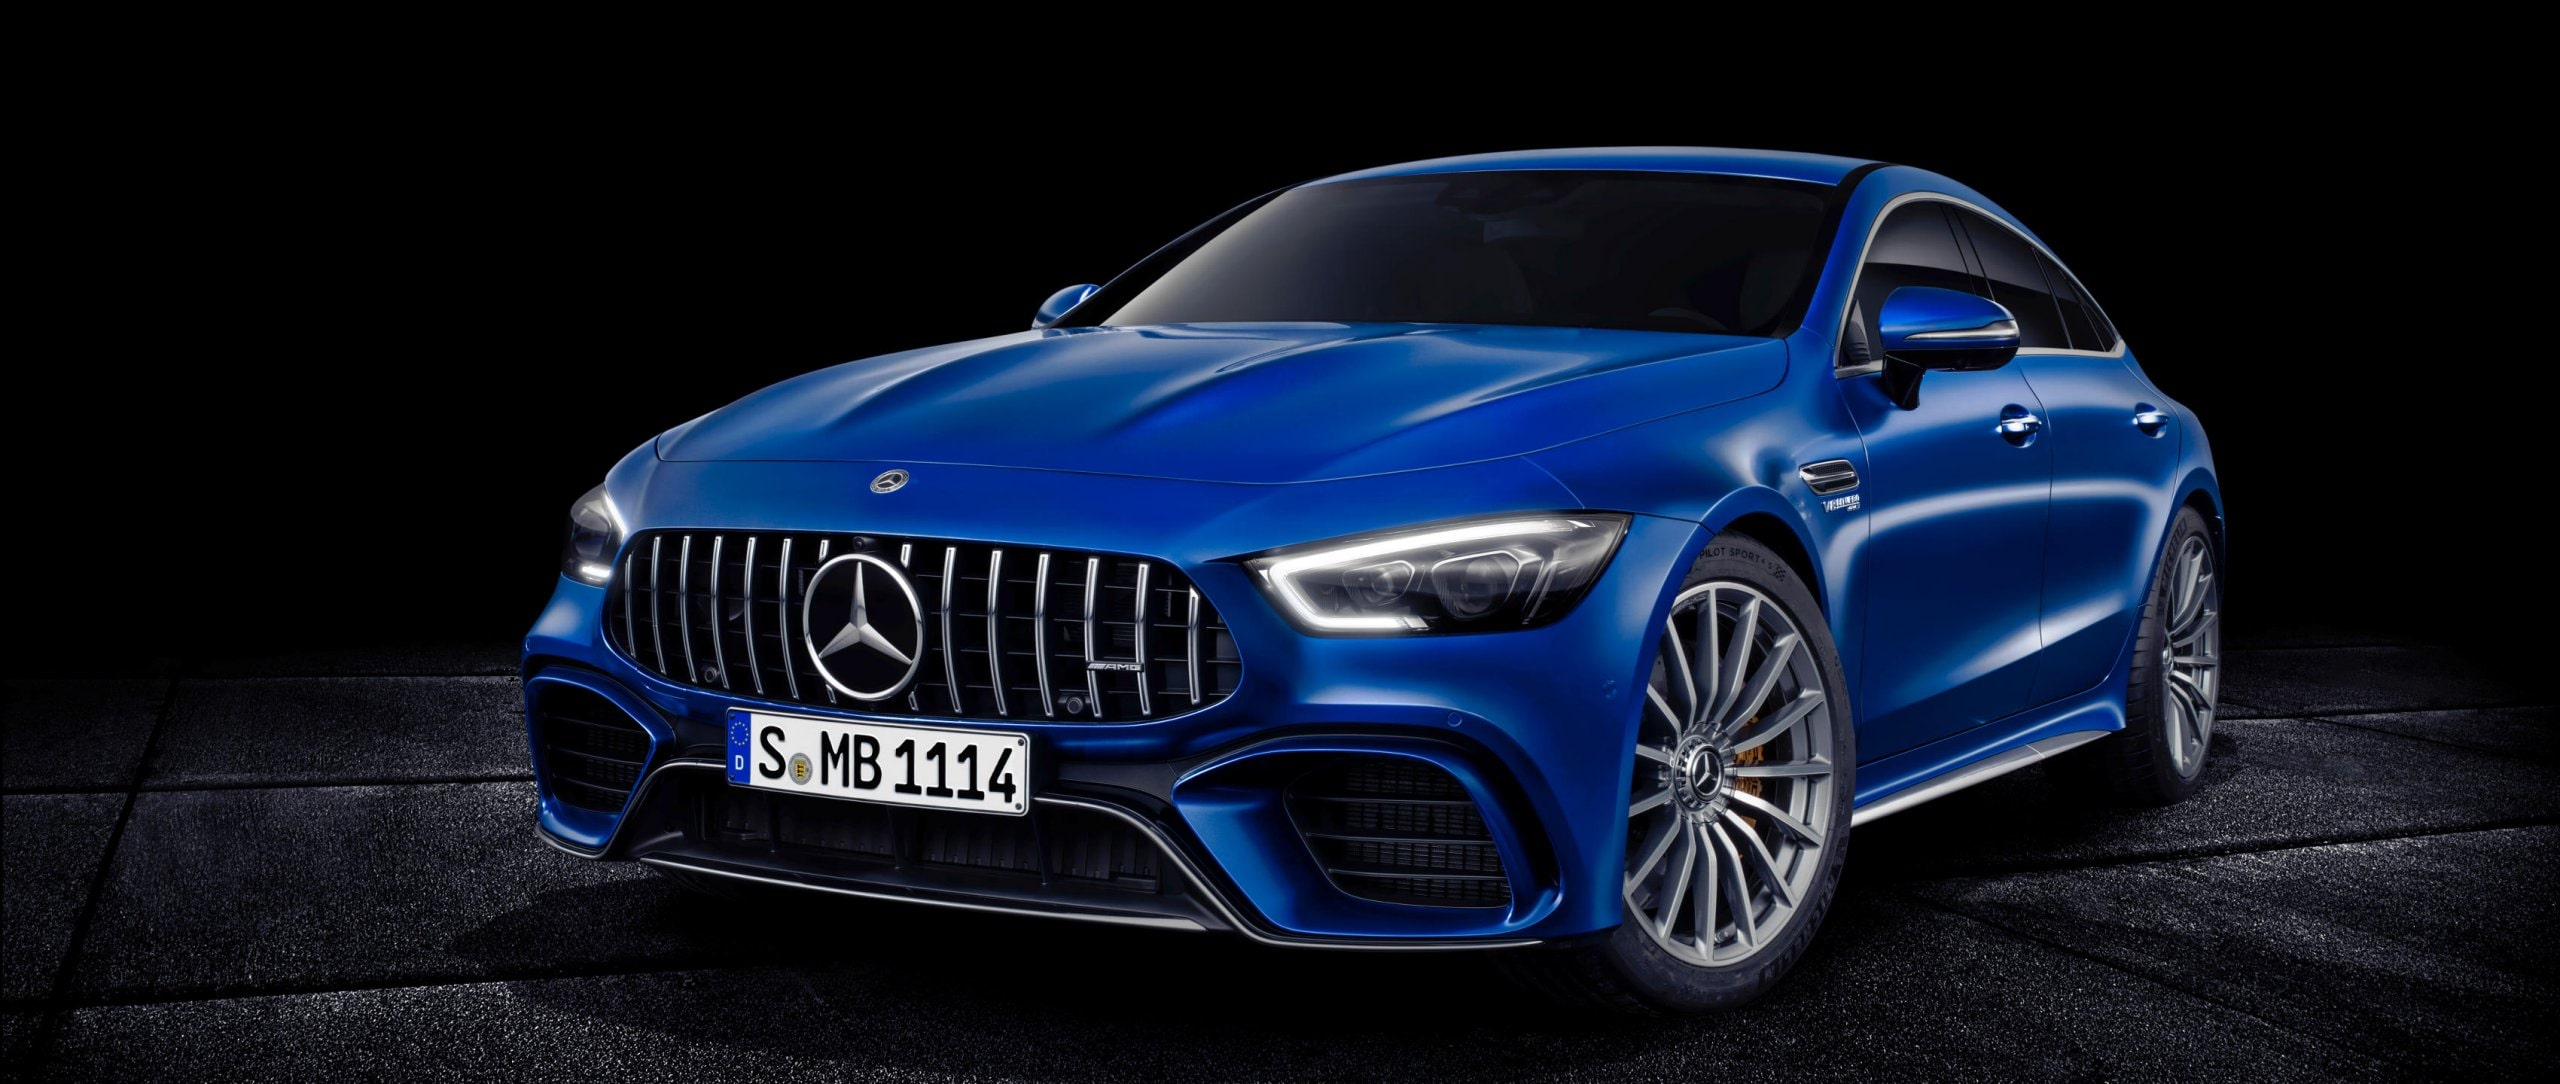 The new Mercedes-AMG GT 4-Door Coupé combines unique design, high comfort and outstanding sports car engineering.